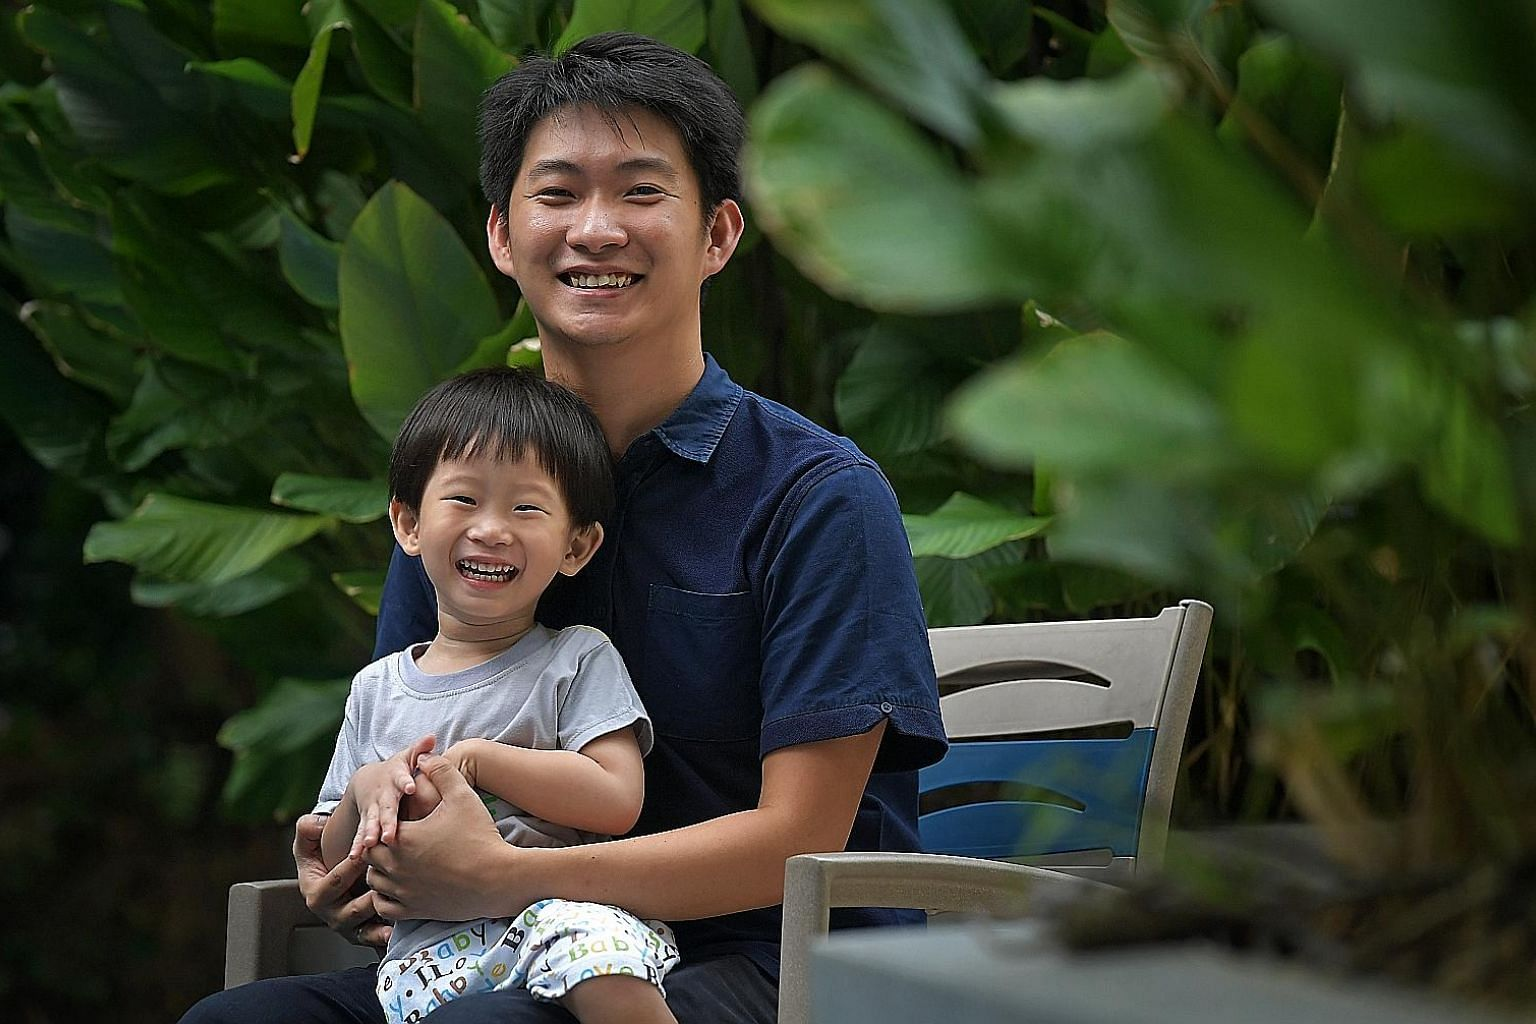 Singapore permanent resident Brian Halim, seen here with his three-year-old son Oscar, is a financial controller for a logistics company. He started investing in stocks when he was 24 and favours those on the Singapore Exchange that suit his risk app